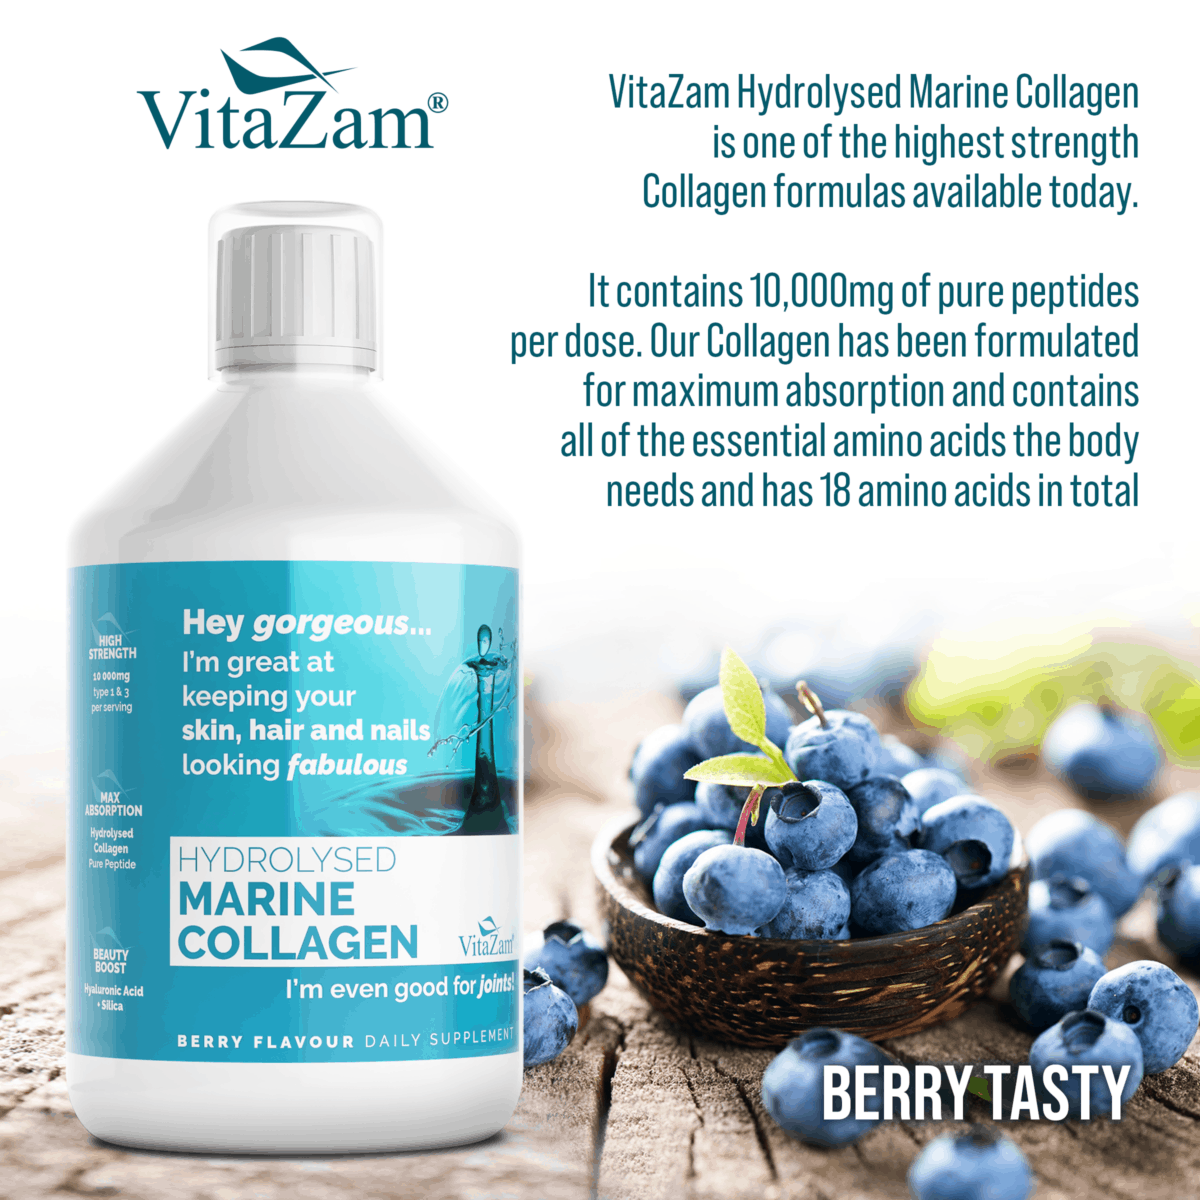 Vitazam – Hydrolysed Marine Collagen | Absolute Collagen Drink to Reduce Wrinkles, Strengthens Hair & Nails, Prevent Cellulite and Reduce Joint Pain & Inflammation – 500 ml- Berry Flavour